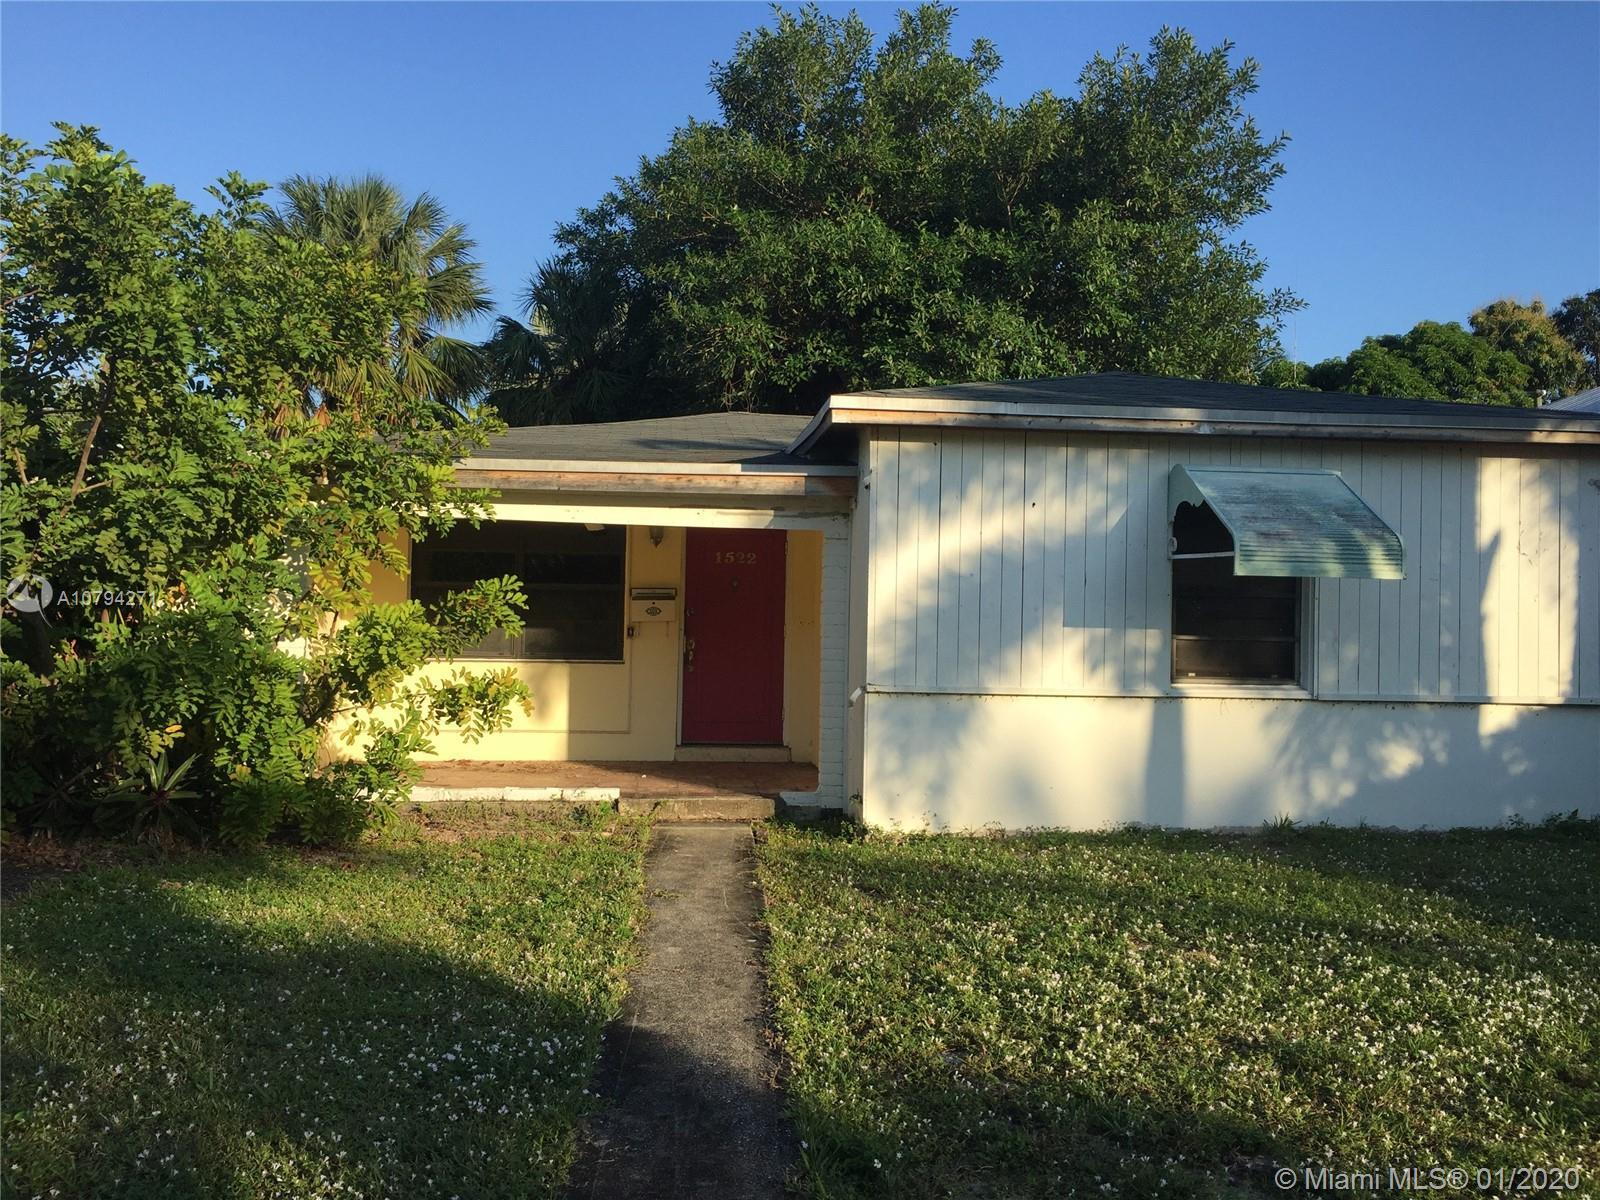 Prime opportunity in Poinsettia Heights for a spec home or end user!  This property comes with worki